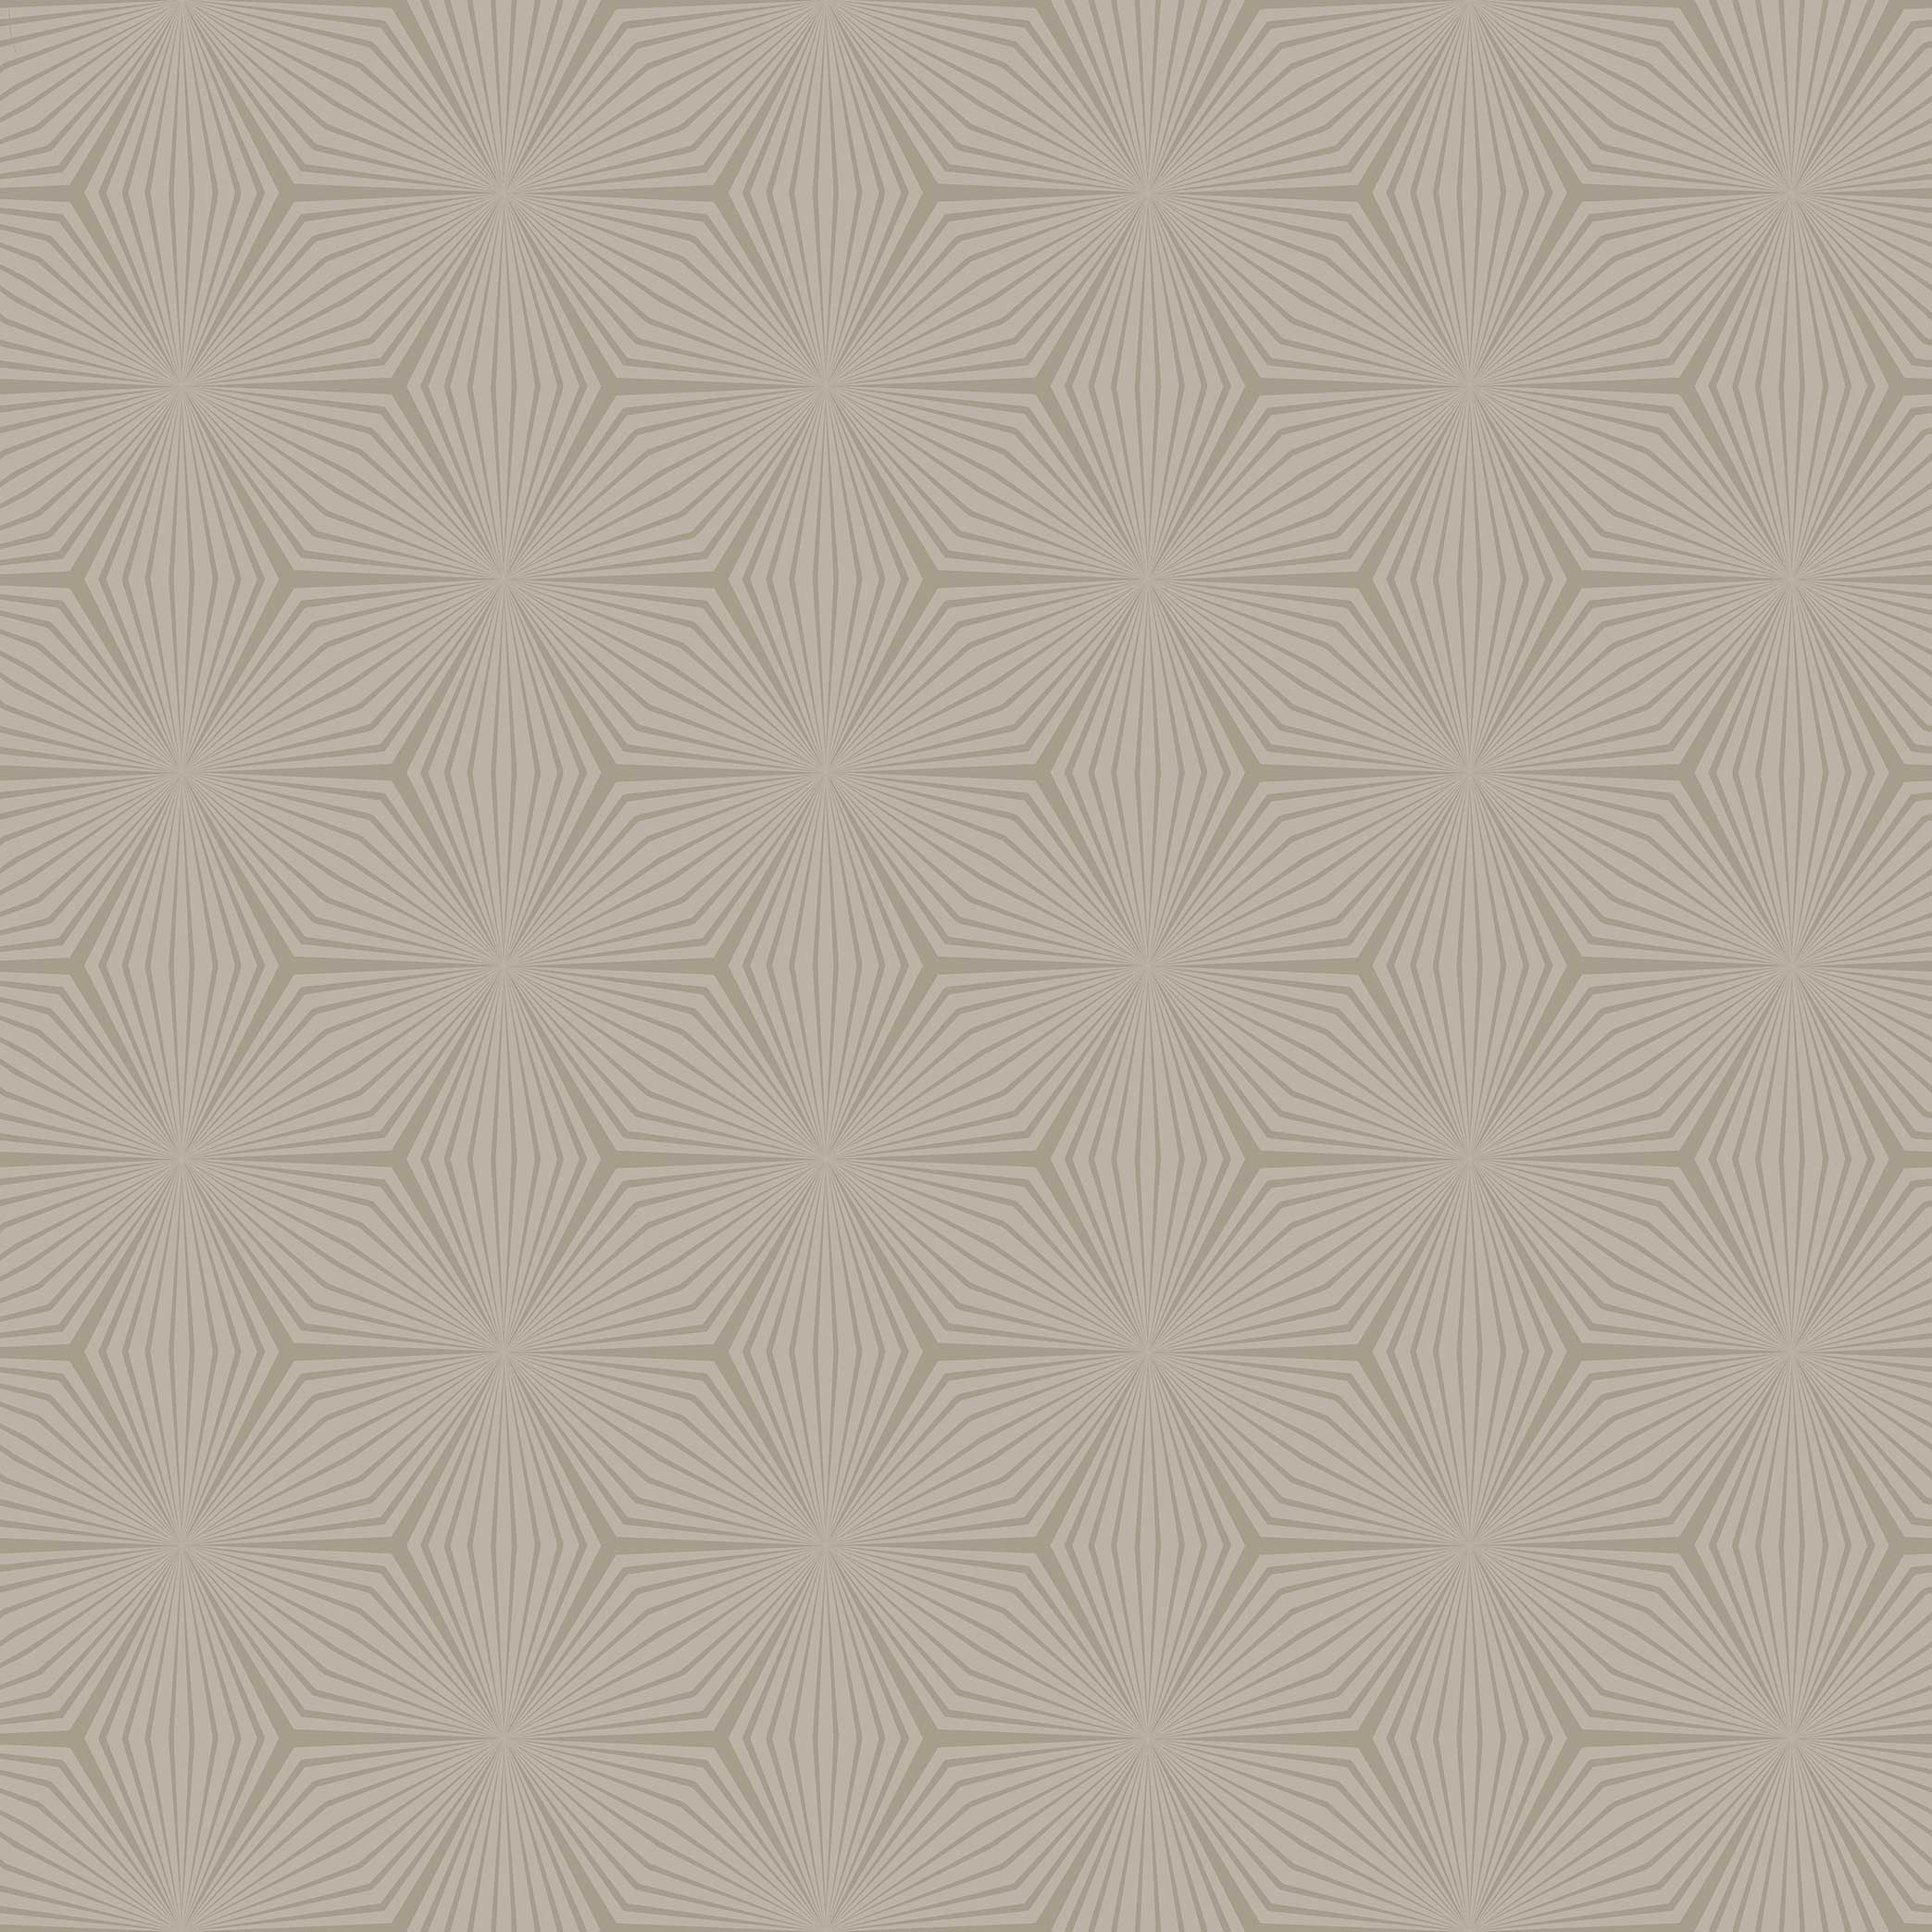 Tulsa Industrial Texture Wallpaper